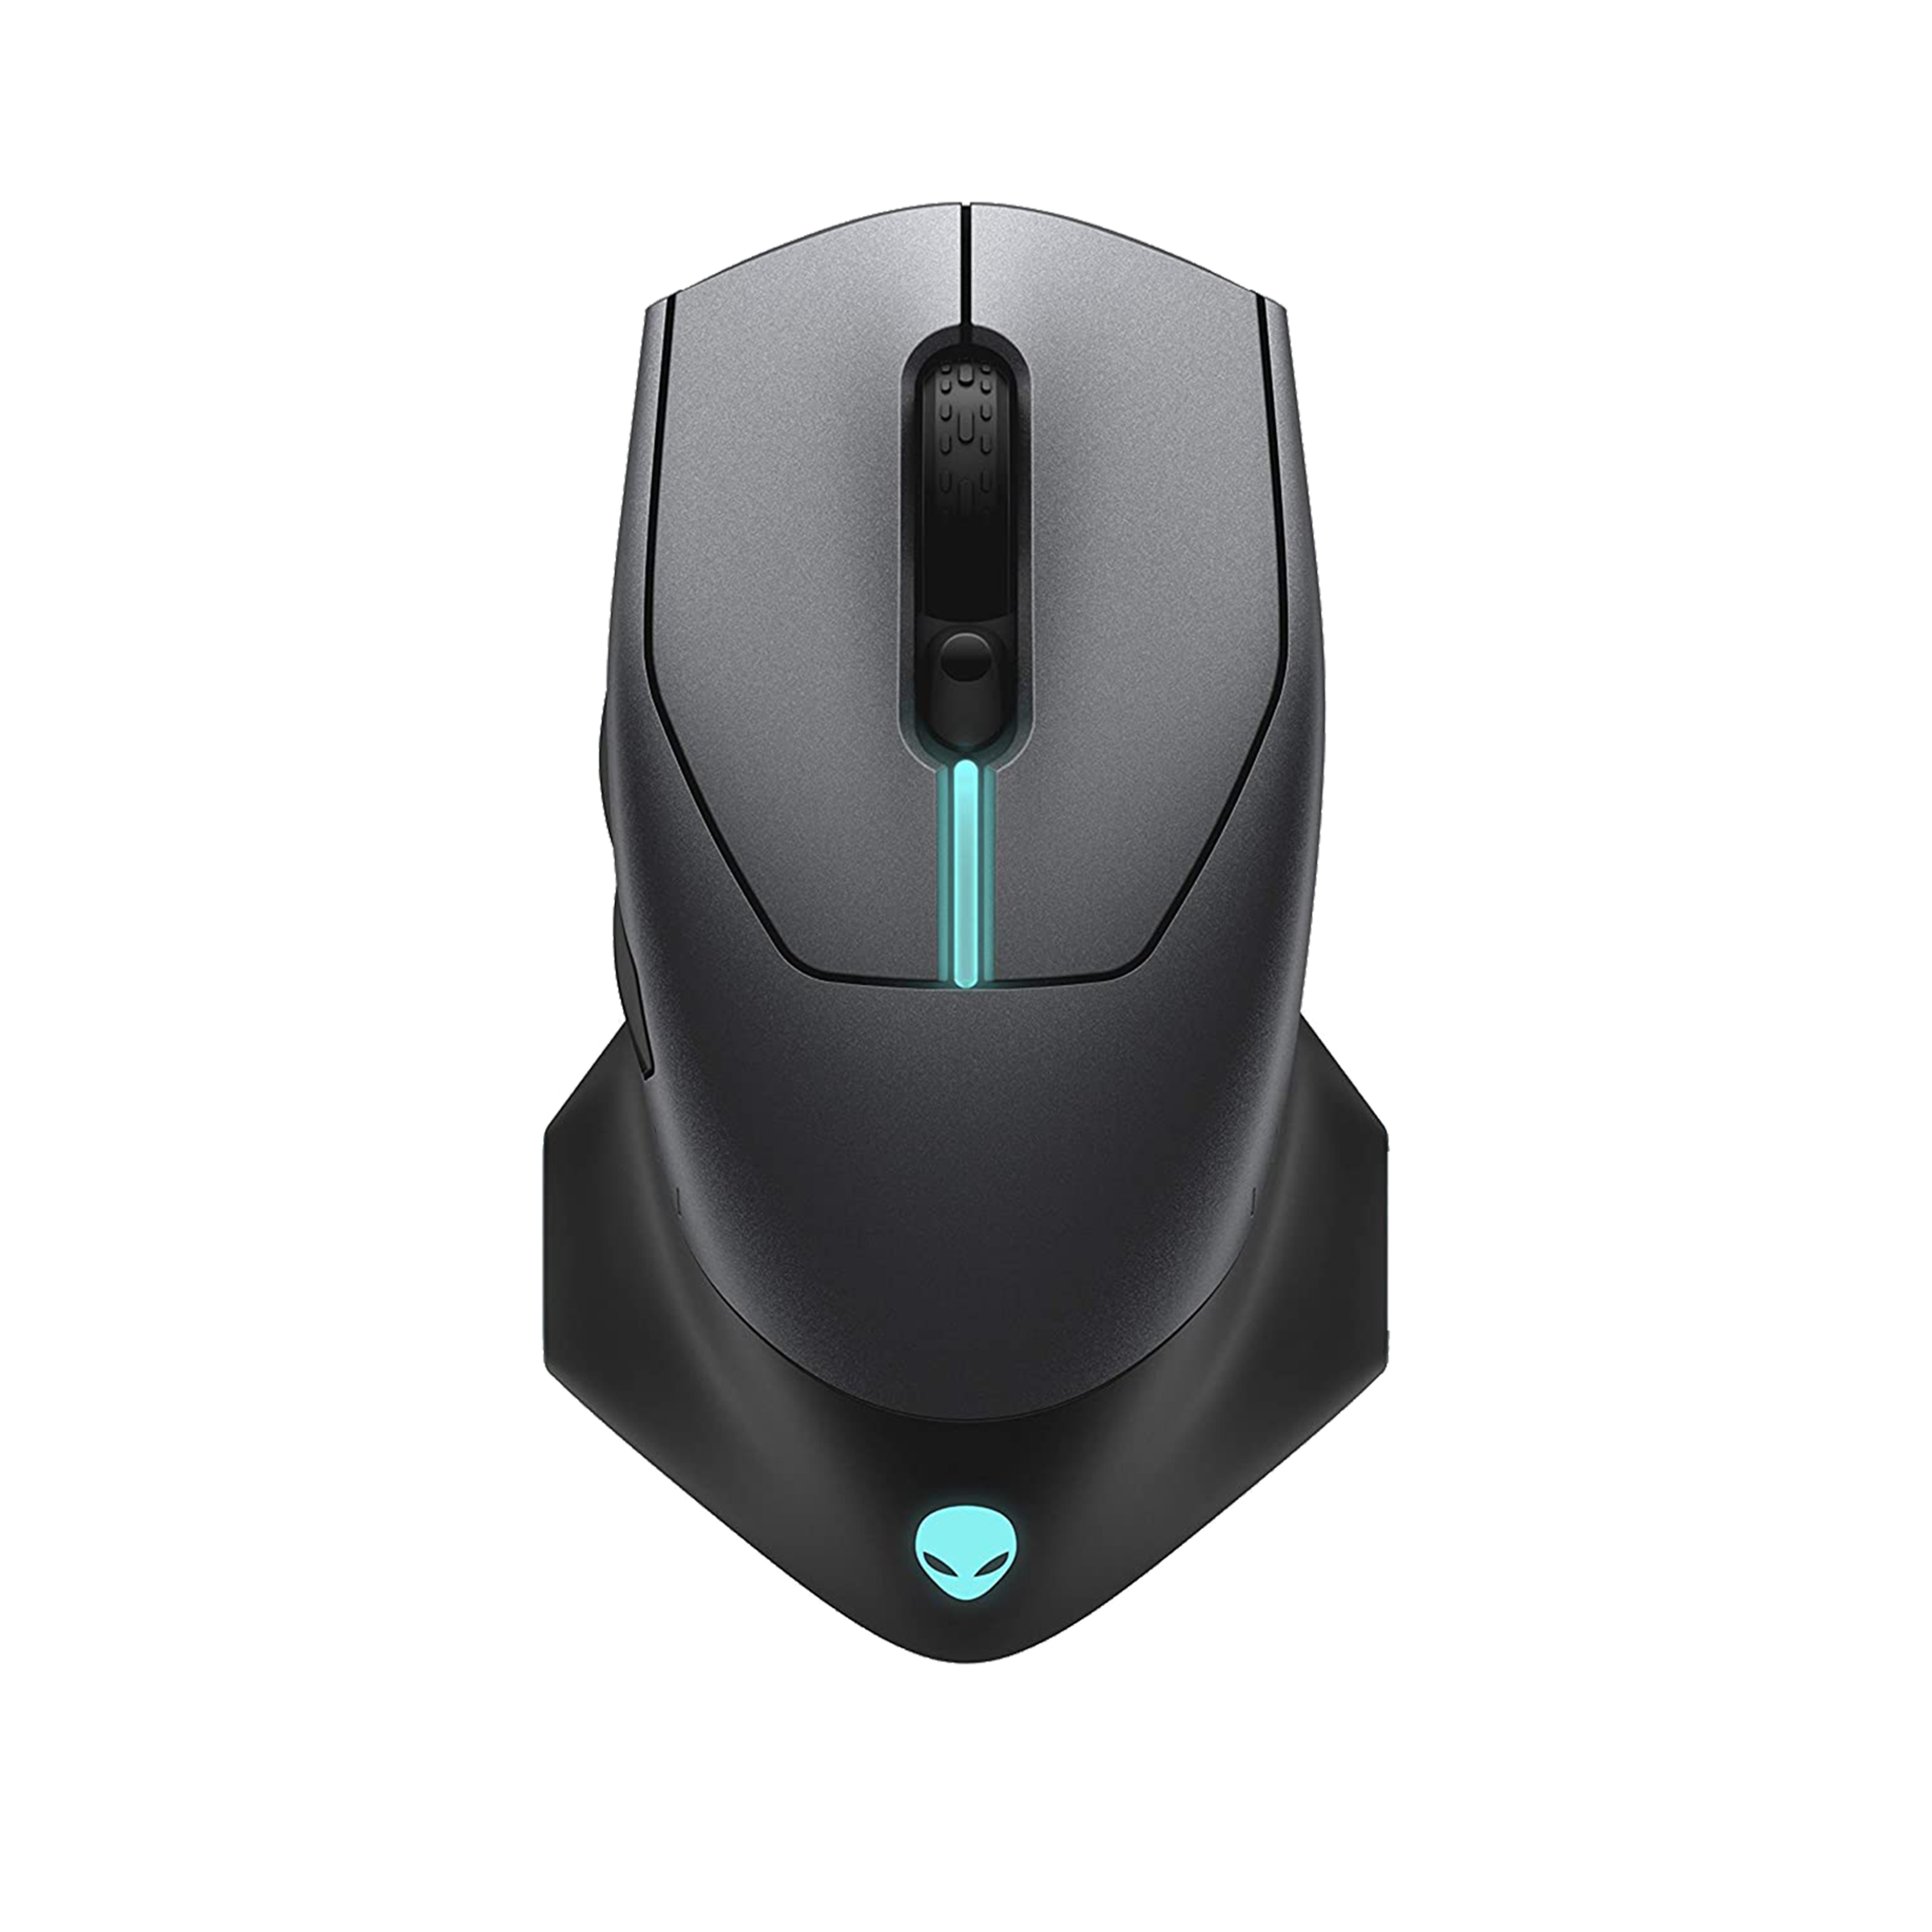 Dell Alienware Wired | Wireless | USB Optical Mouse (Auto-Calibration, AW610M, Dark side of the moon)_1